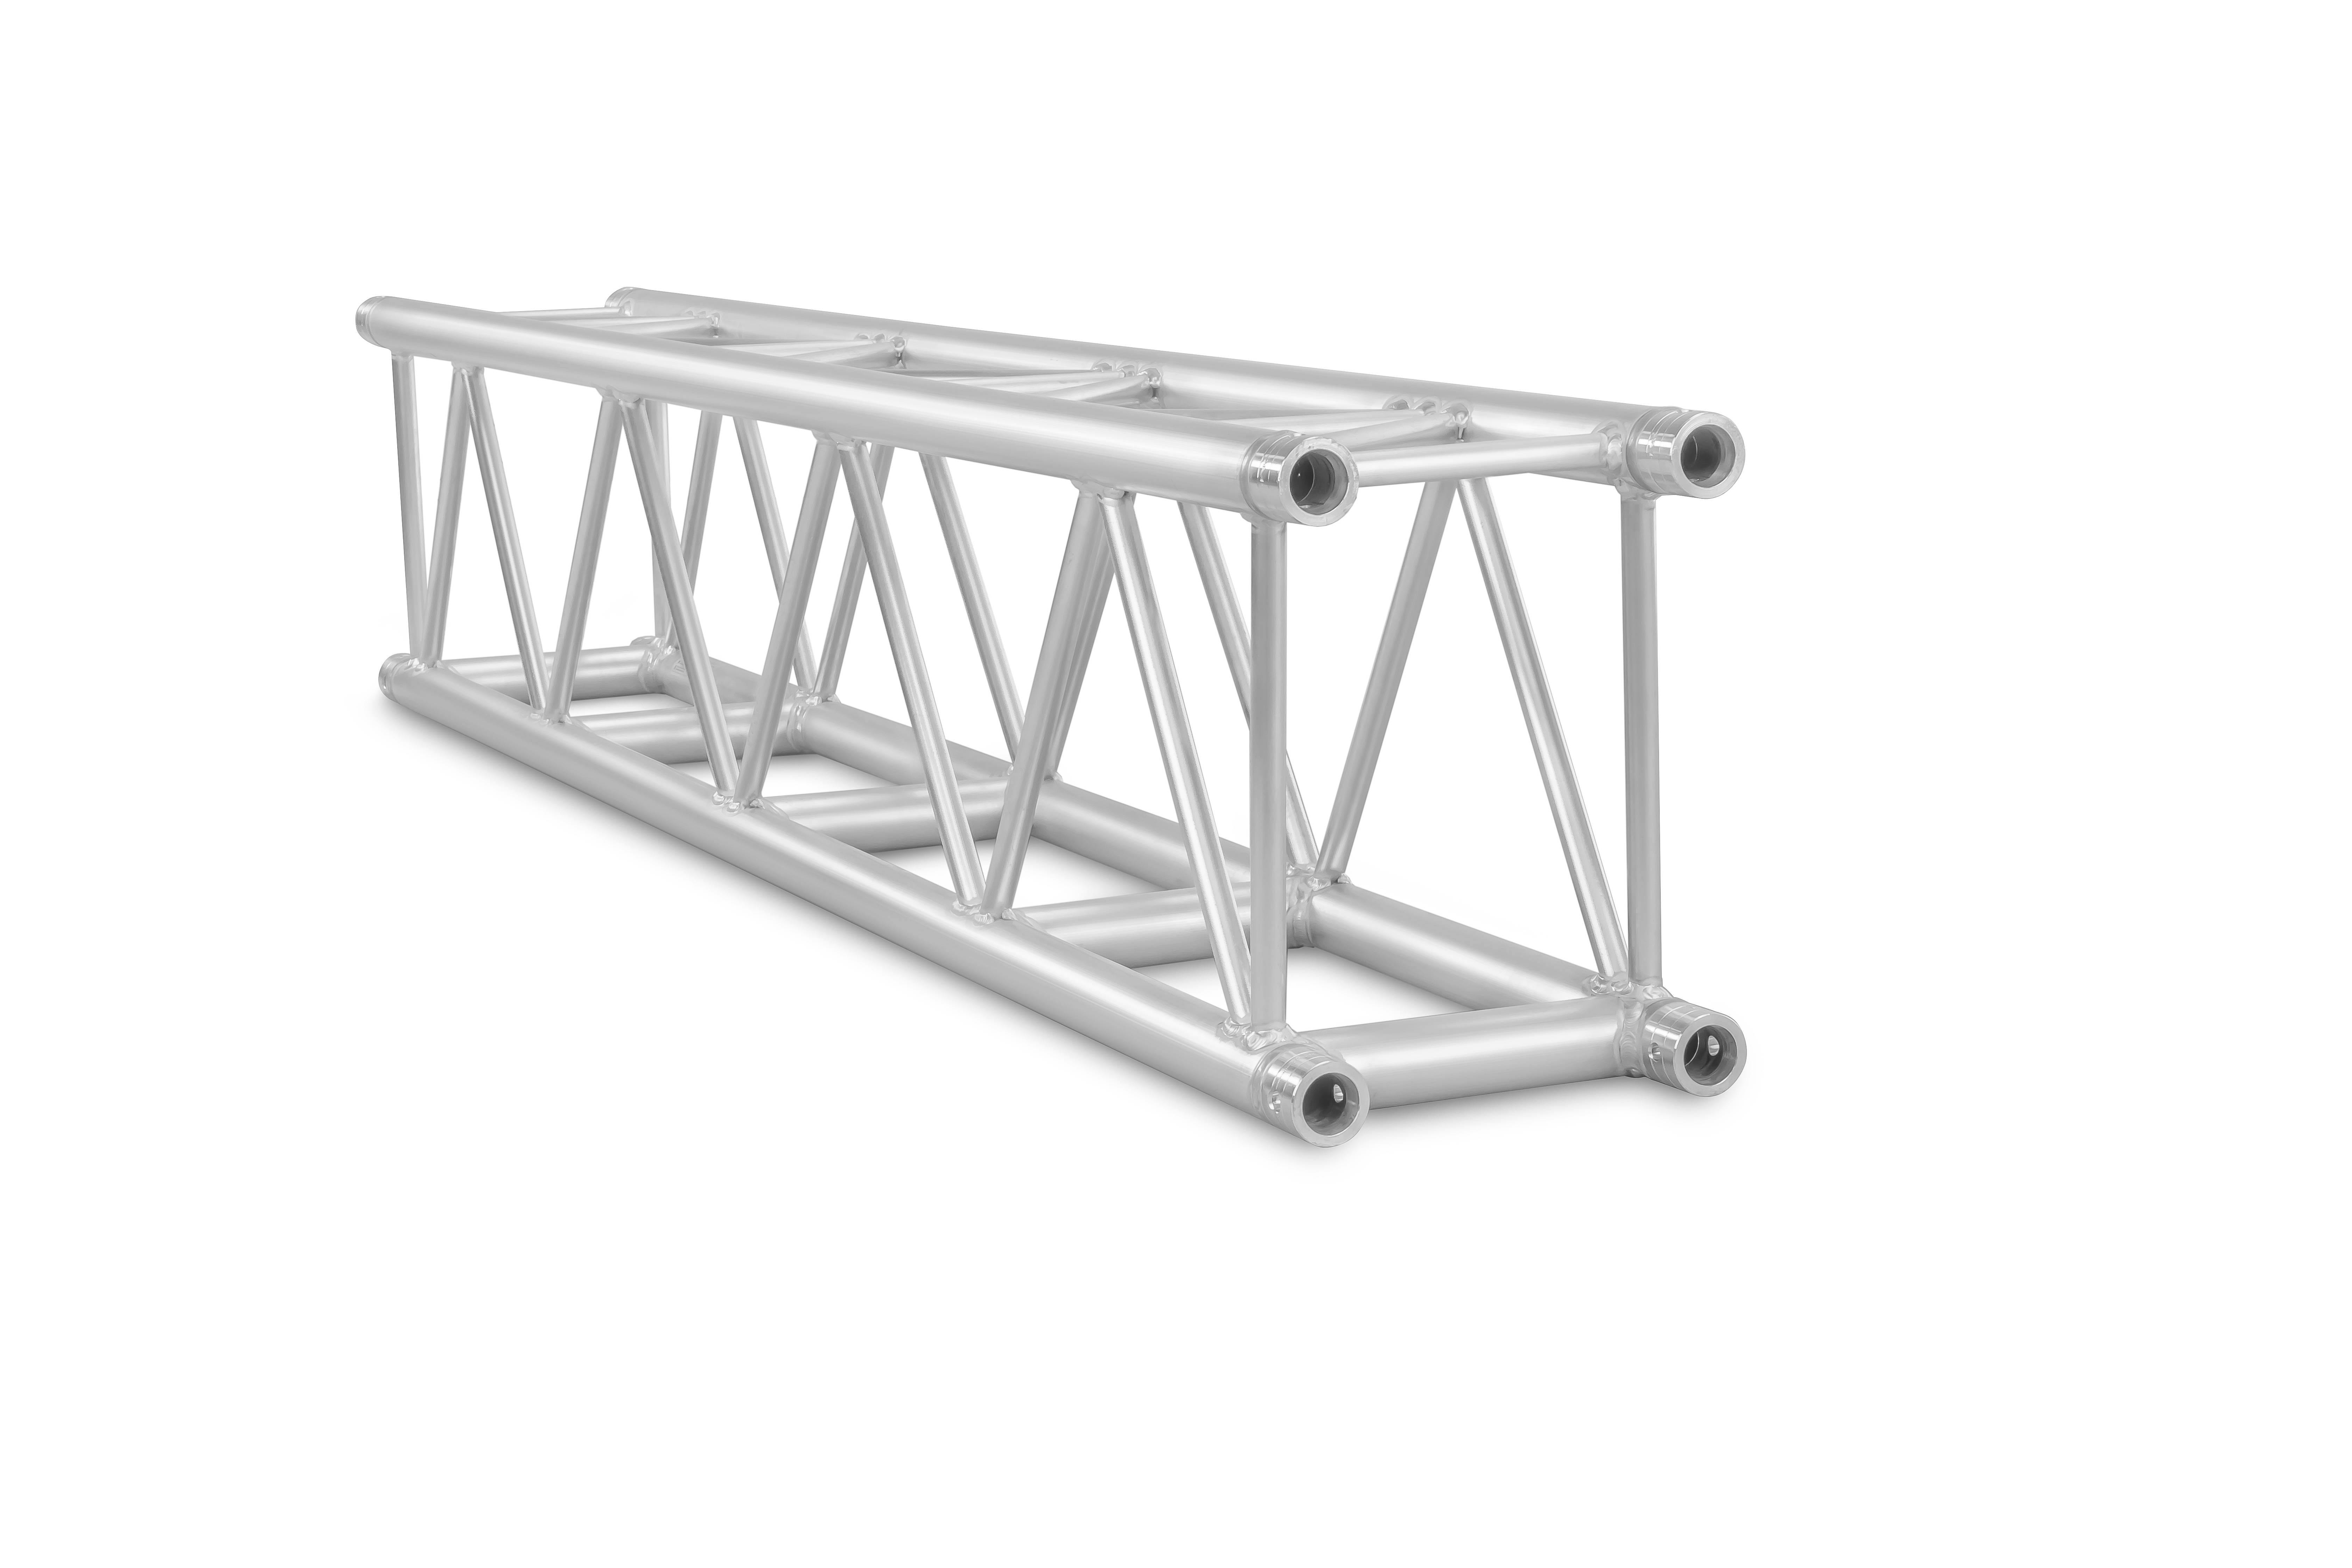 M290x390 - Medium duty truss range